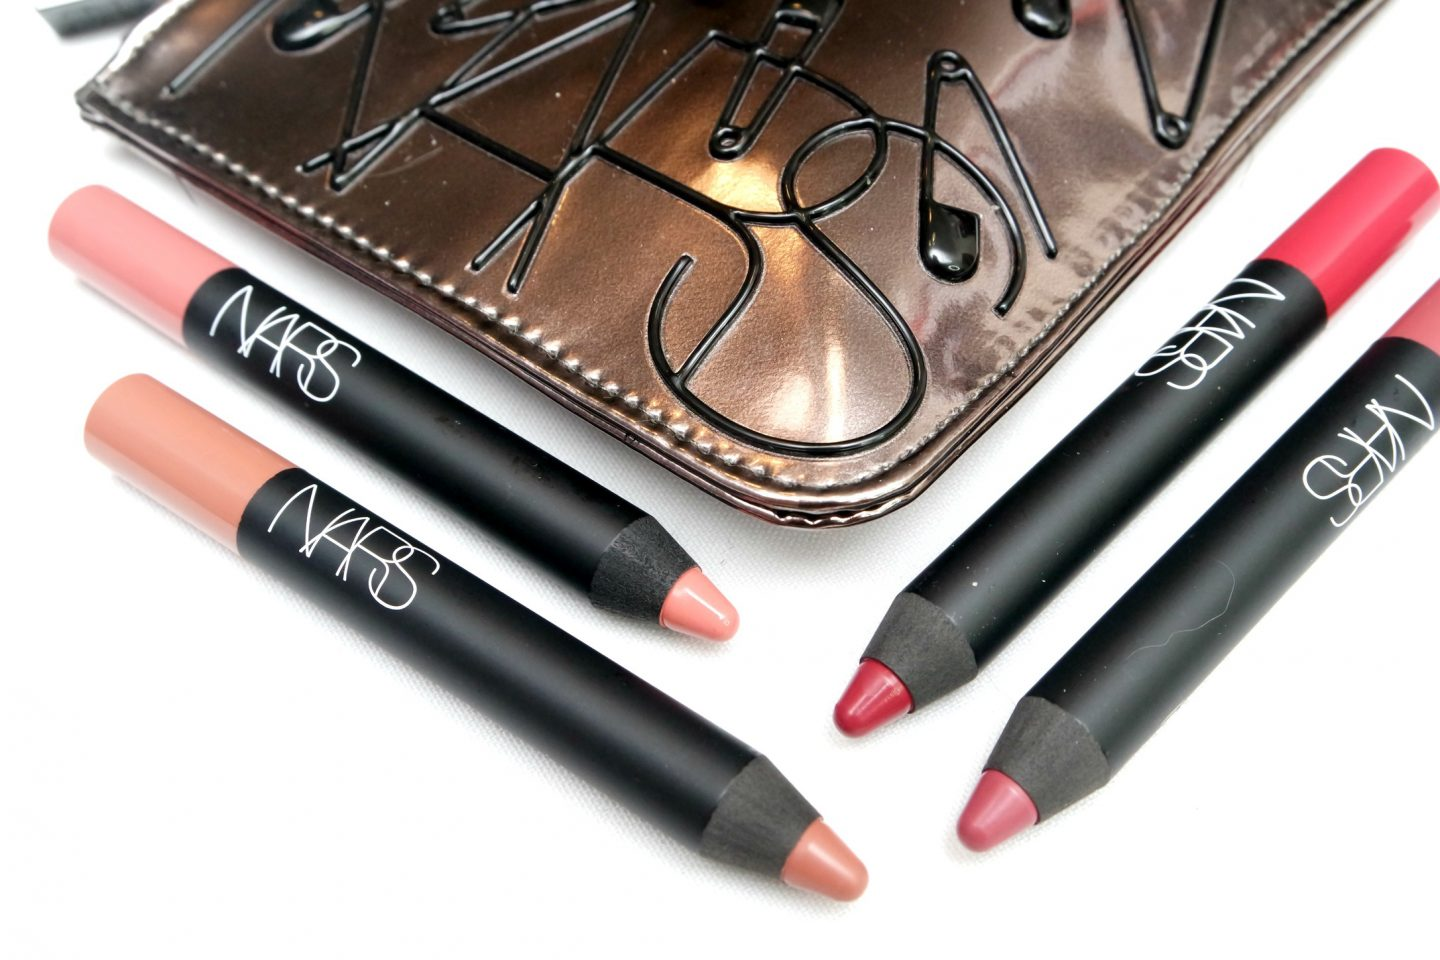 nars holiday collection 2018 the beautynerd